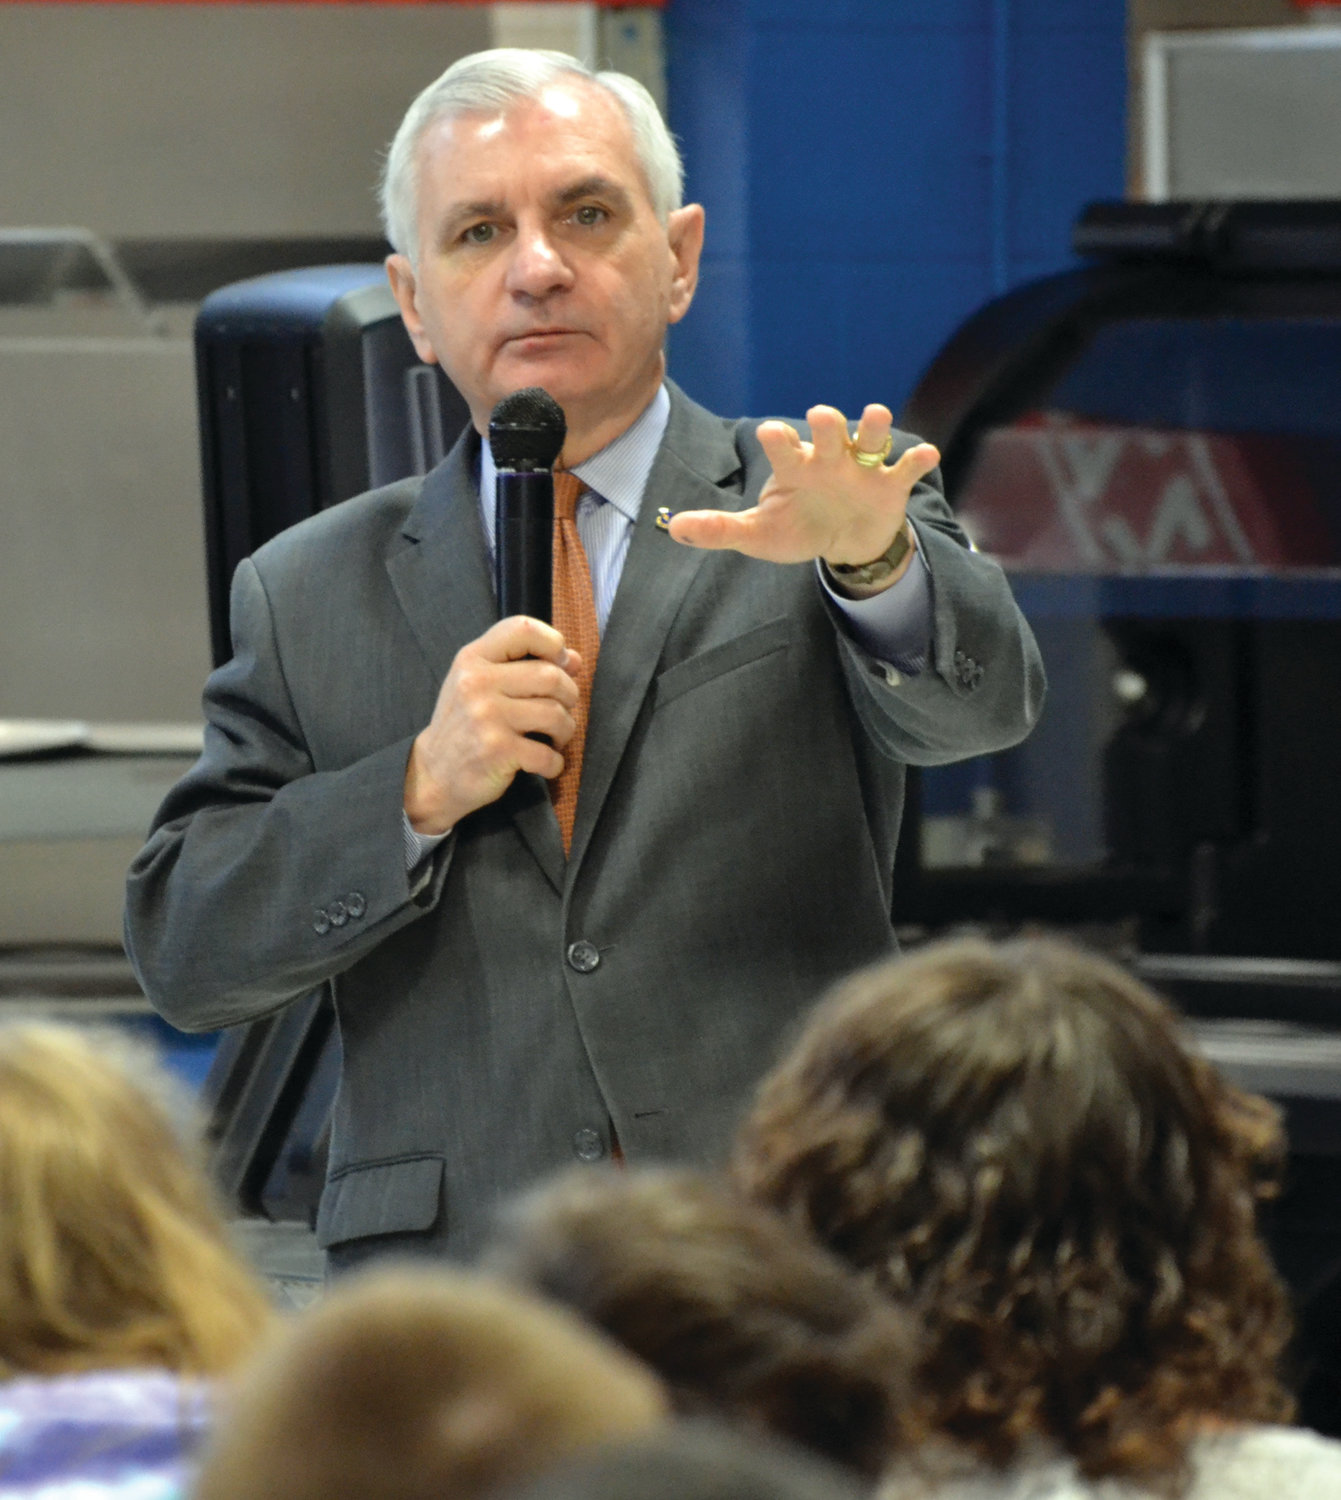 BEHIND THE SCENES: U.S. Sen. Jack Reed (above) stopped by Ferri Middle School on Monday morning to give students (below) background on how the House and Senate operate. He also answered a few questions, ranging from state infrastructure to impeachment.